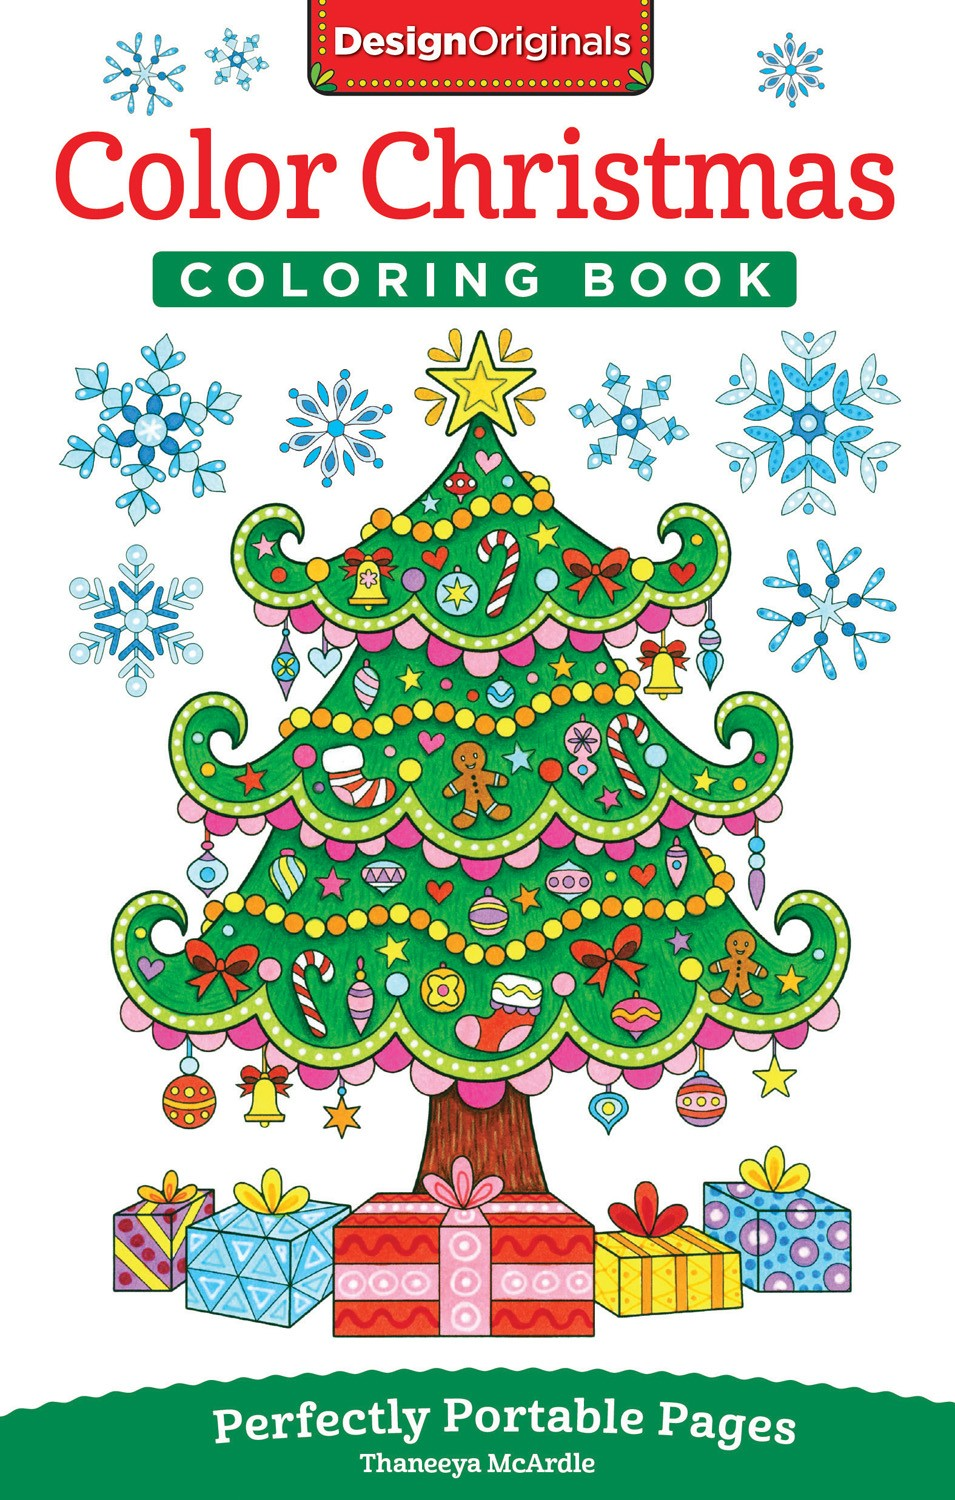 A Christmas Coloring Book With Color